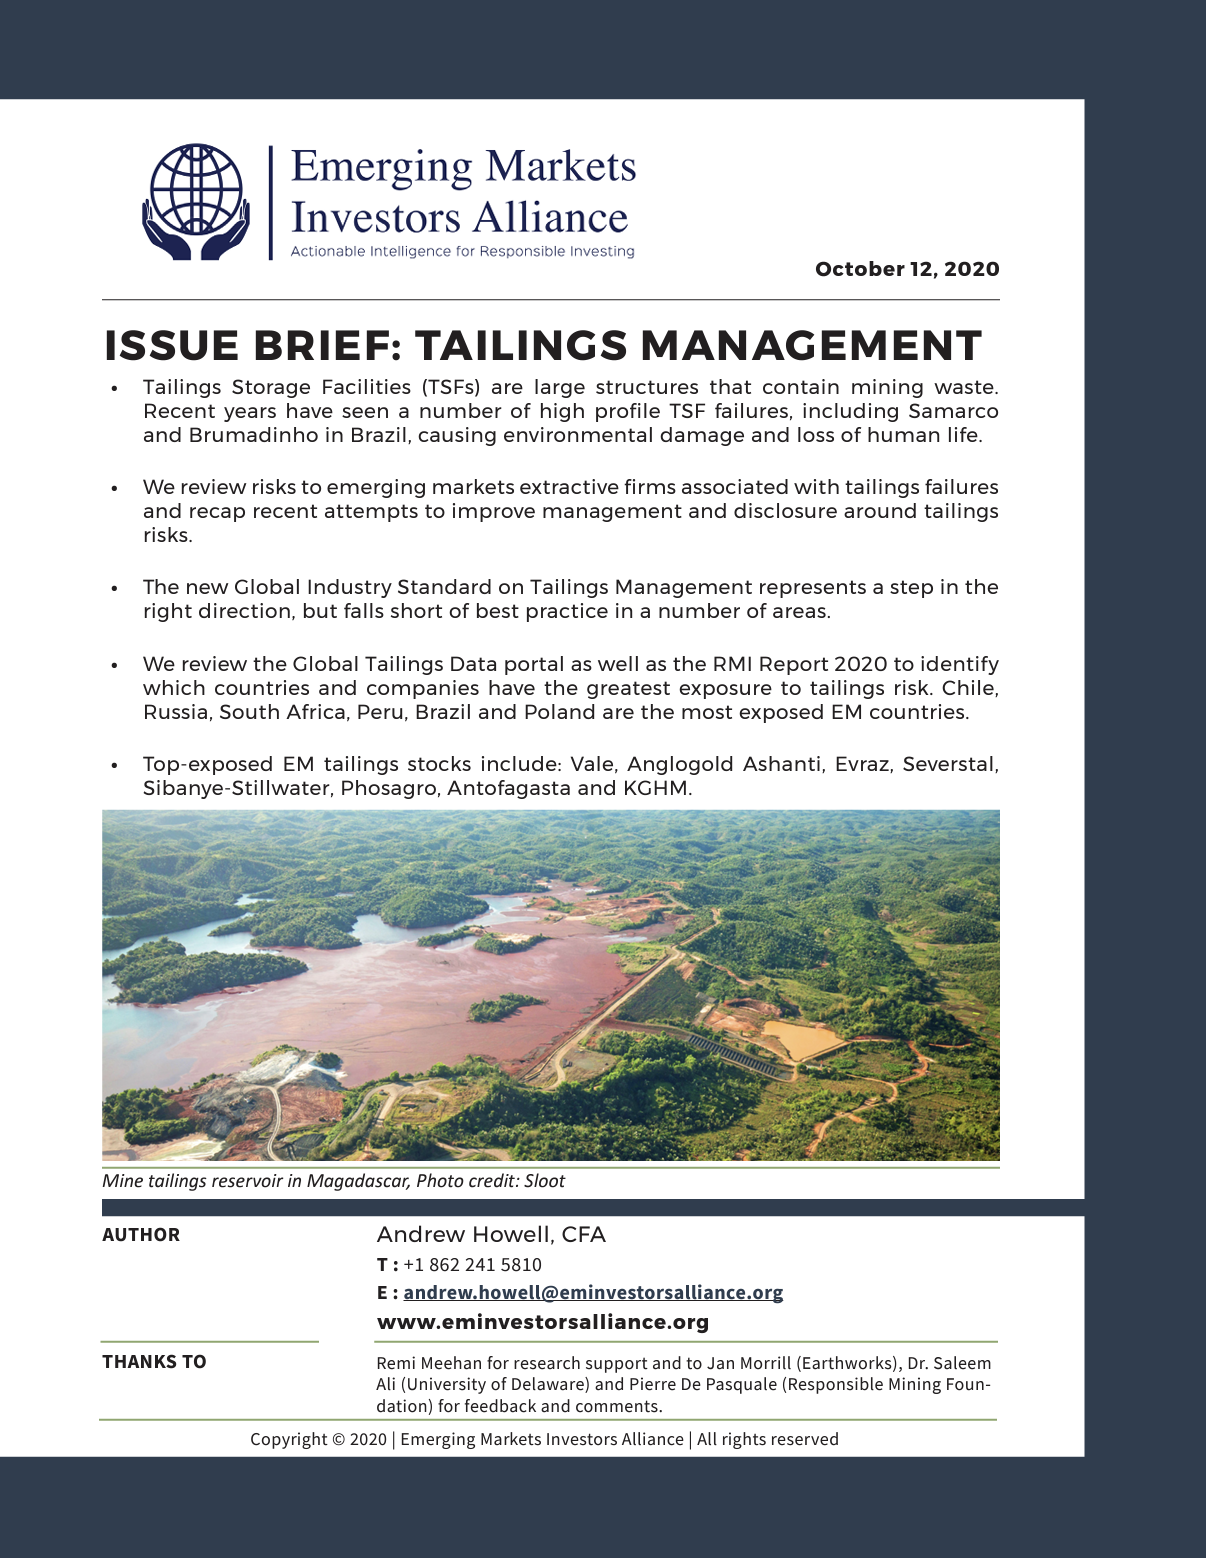 Issue Brief on Tailings